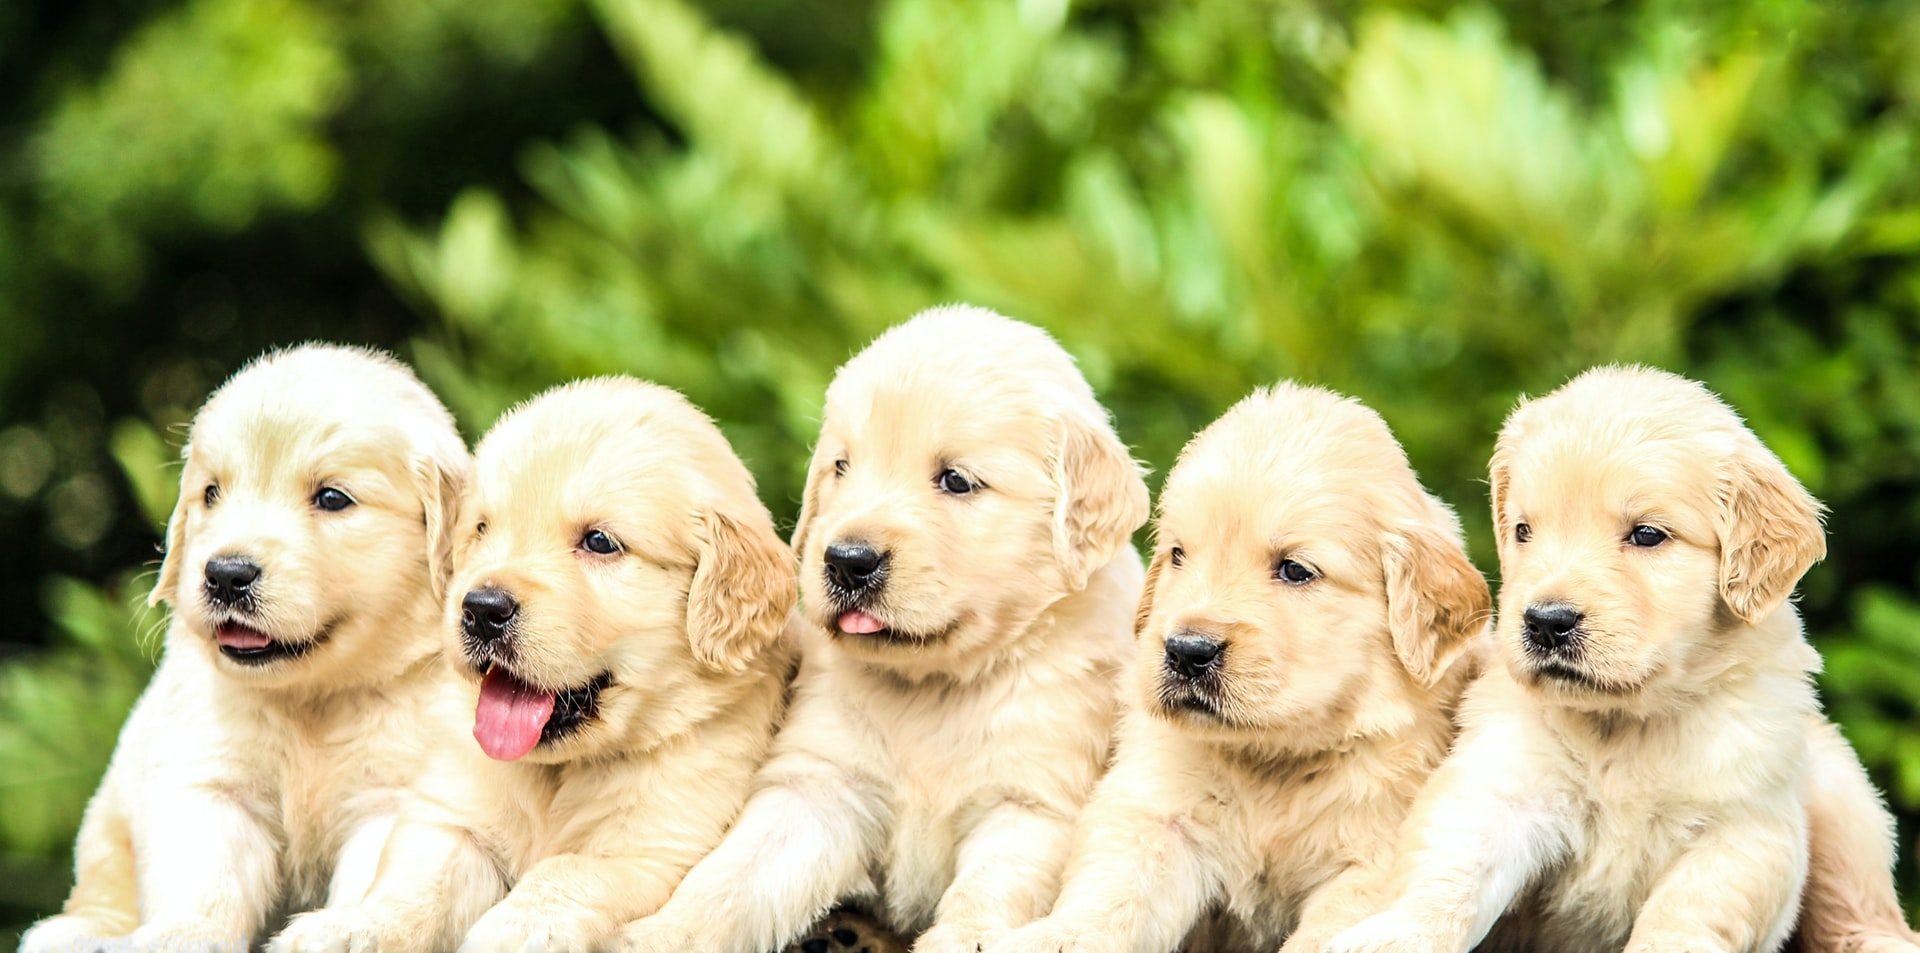 can dogs improve health